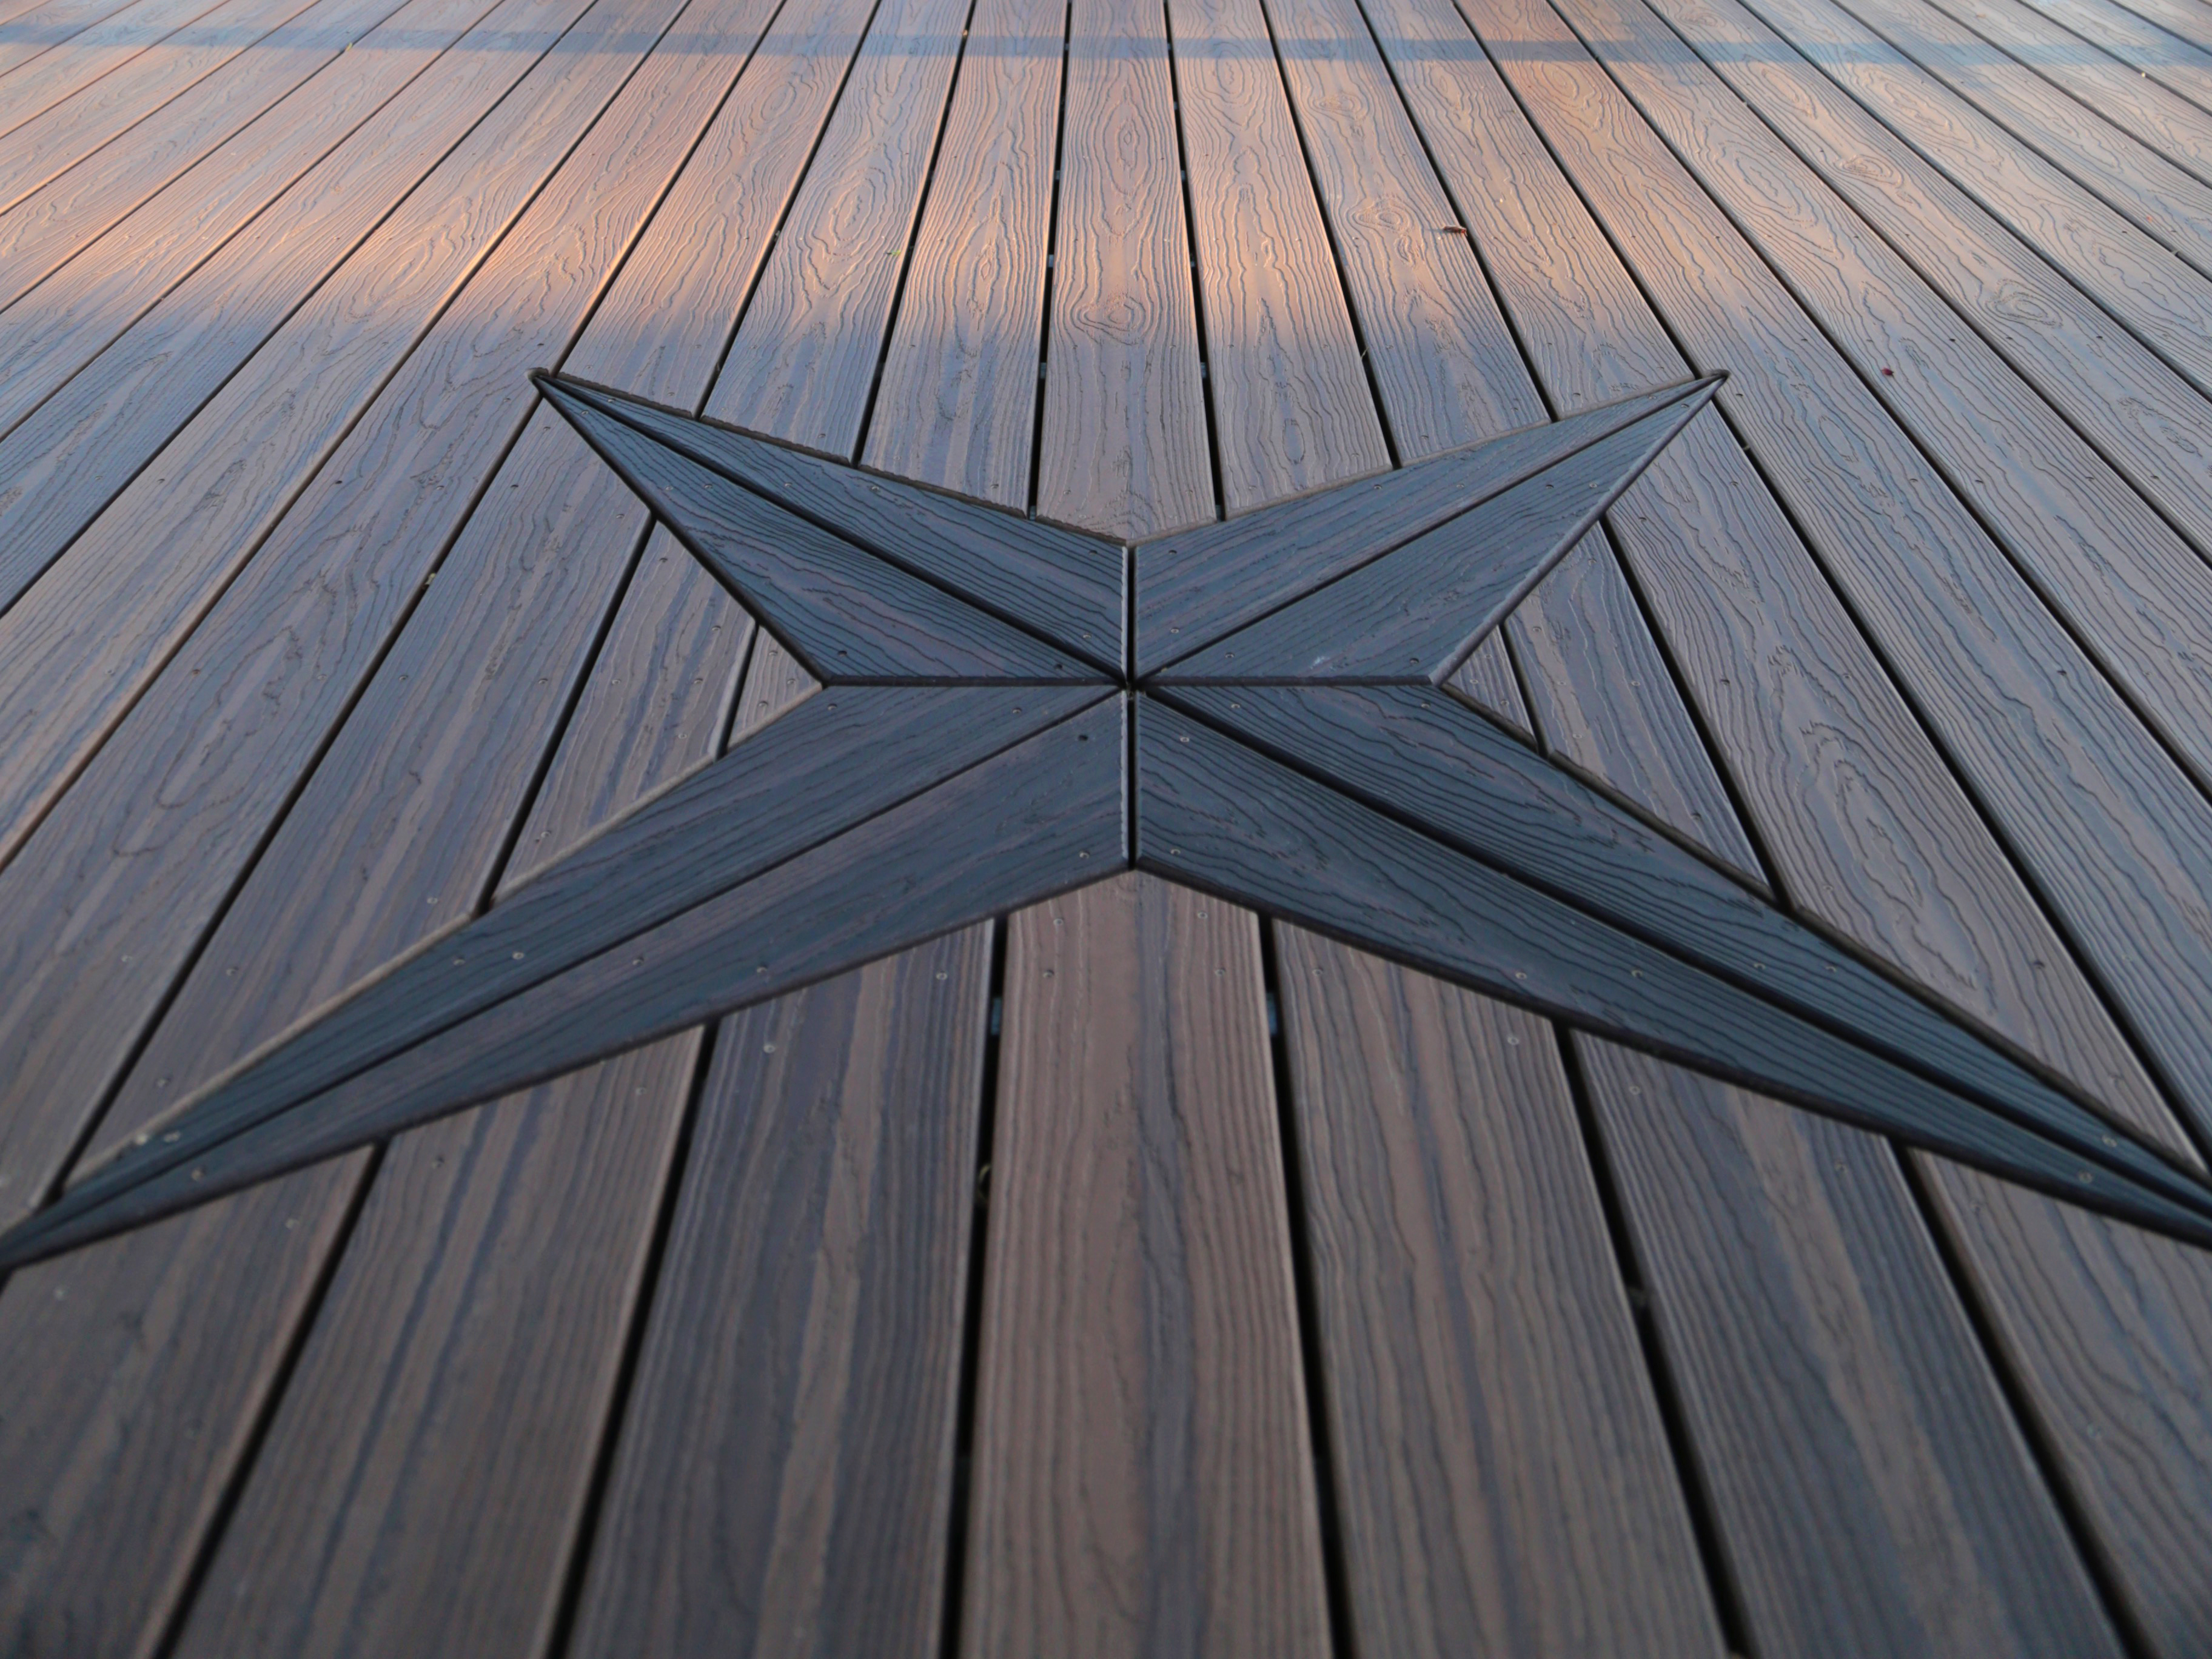 EVERGRAIN_DISTINCTION_COLLECTION_DECKING_SPICED_TEAK_004